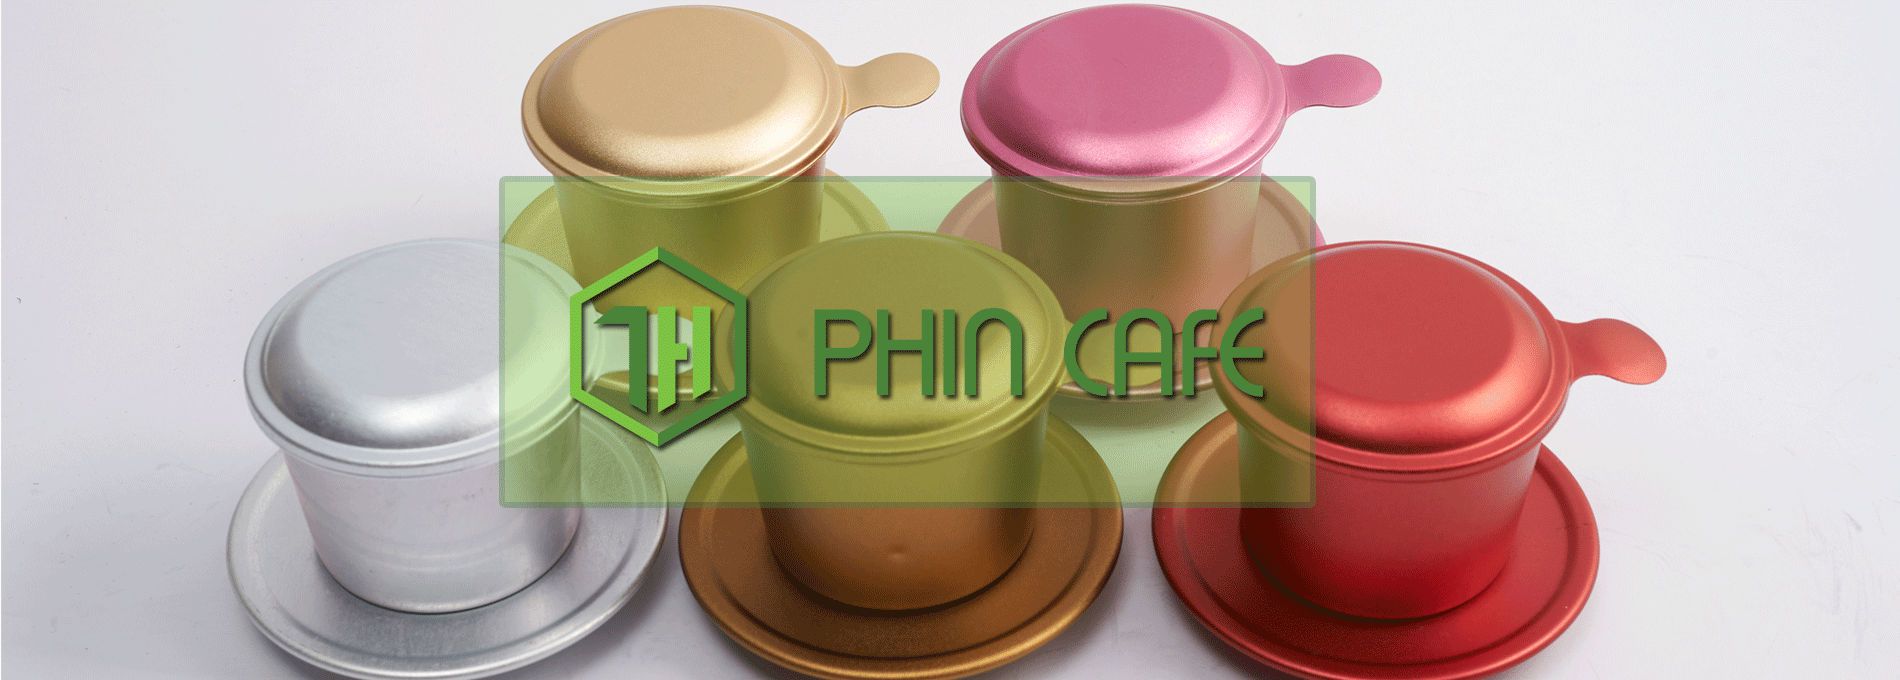 Phin cafe nhôm TH